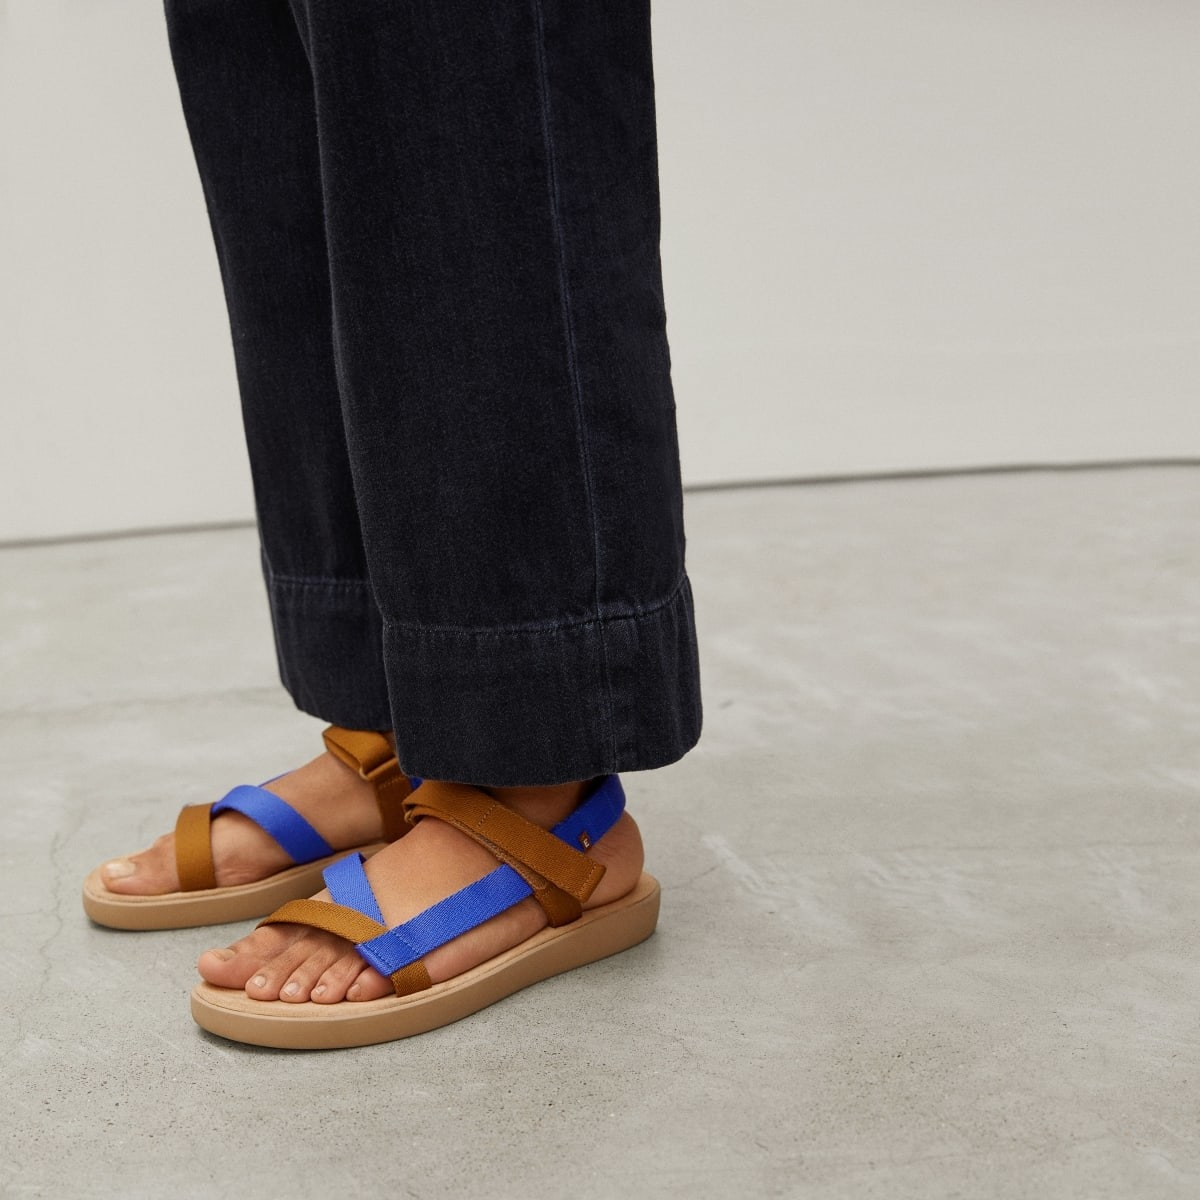 A model wearing the sandals in Brown/Blue